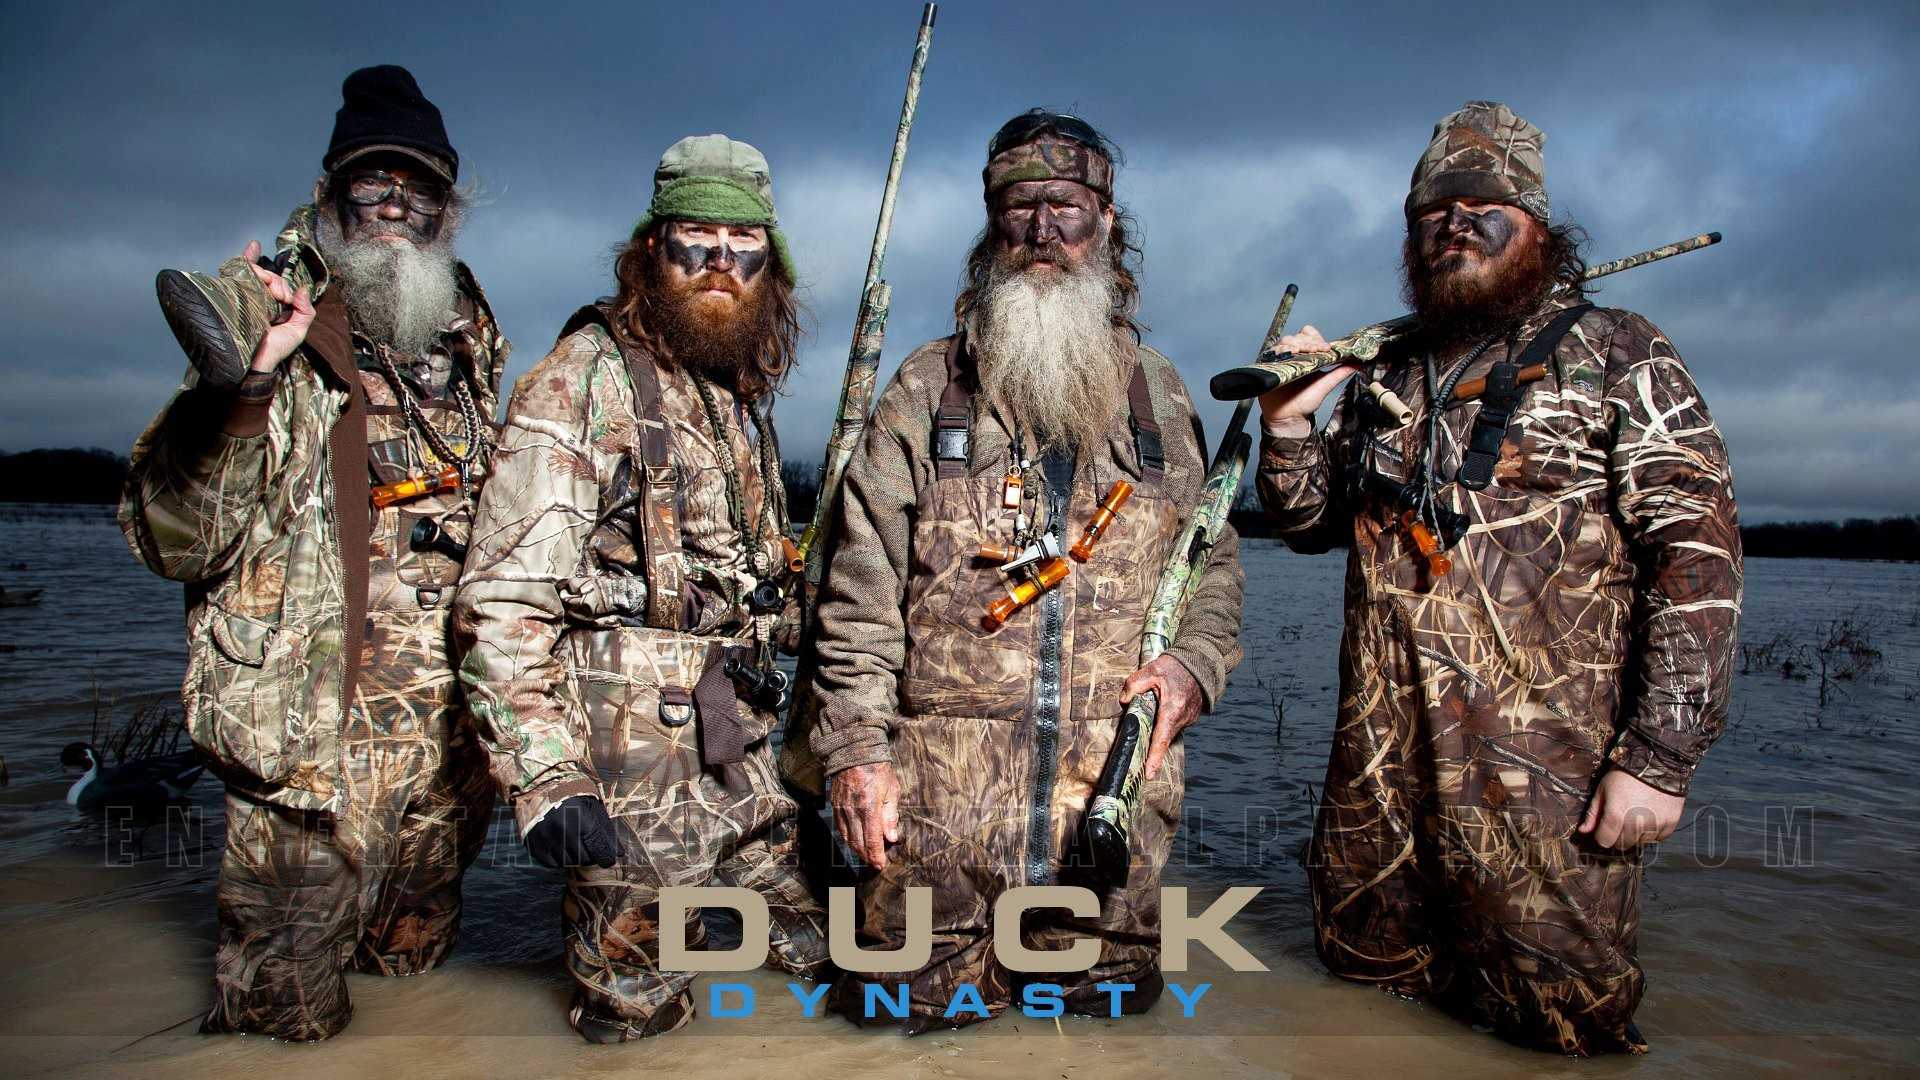 Res: 1920x1080, Duck Dynasty Wallpaper - Original size, download now.